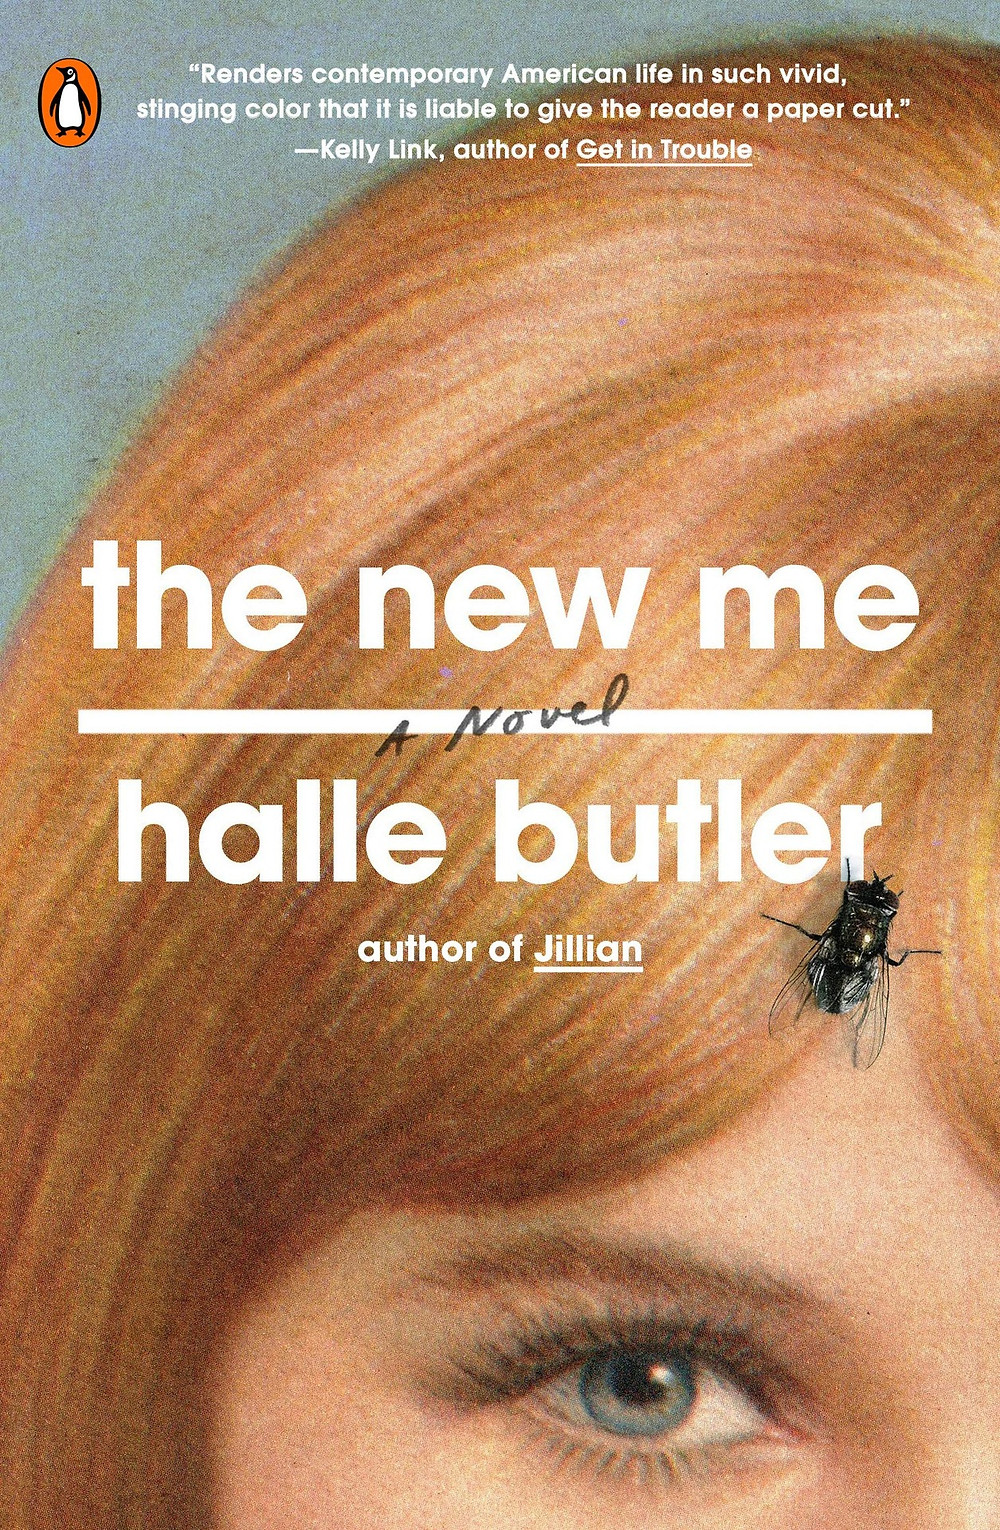 """The New Me Halle Butler (Author) Halle Butler is the author of Jillian. She has been named a National Book Award Foundation """"5 Under 35"""" honoree and a Granta Best Young American Novelist. thebookslut book reviews """"[A] definitive work of millennial literature . . . wretchedly riveting."""" --Jia Tolentino, The New Yorker """"Girls + Office Space + My Year of Rest and Relaxation + anxious sweating = The New Me."""" --Entertainment Weekly   I'm still trying to make the dream possible: still might finish my cleaning project, still might sign up for that yoga class, still might, still might. I step into the shower and almost faint, an image of taking the day by the throat and bashing its head against the wall floating in my mind. Thirty-year-old Millie just can't pull it together. She spends her days working a thankless temp job and her nights alone in her apartment, fixating on all the ways she might change her situation--her job, her attitude, her appearance, her life. Then she watches TV until she falls asleep, and the cycle begins again. When the possibility of a full-time job offer arises, it seems to bring the better life she's envisioning within reach. But with it also comes the paralyzing realization, lurking just beneath the surface, of how hollow that vision has become. """"Wretchedly riveting"""" (The New Yorker) and """"masterfully cringe-inducing"""" (Chicago Tribune), The New Me is the must-read new novel by National Book Foundation """"5 Under 35"""" honoree and Granta Best Young American novelist Halle Butler. Named a Best Book of the Decade by Vox, and a Best Book of 2019 by Vanity Fair, Vulture, Chicago Tribune, Mashable, Bustle, and NPR"""